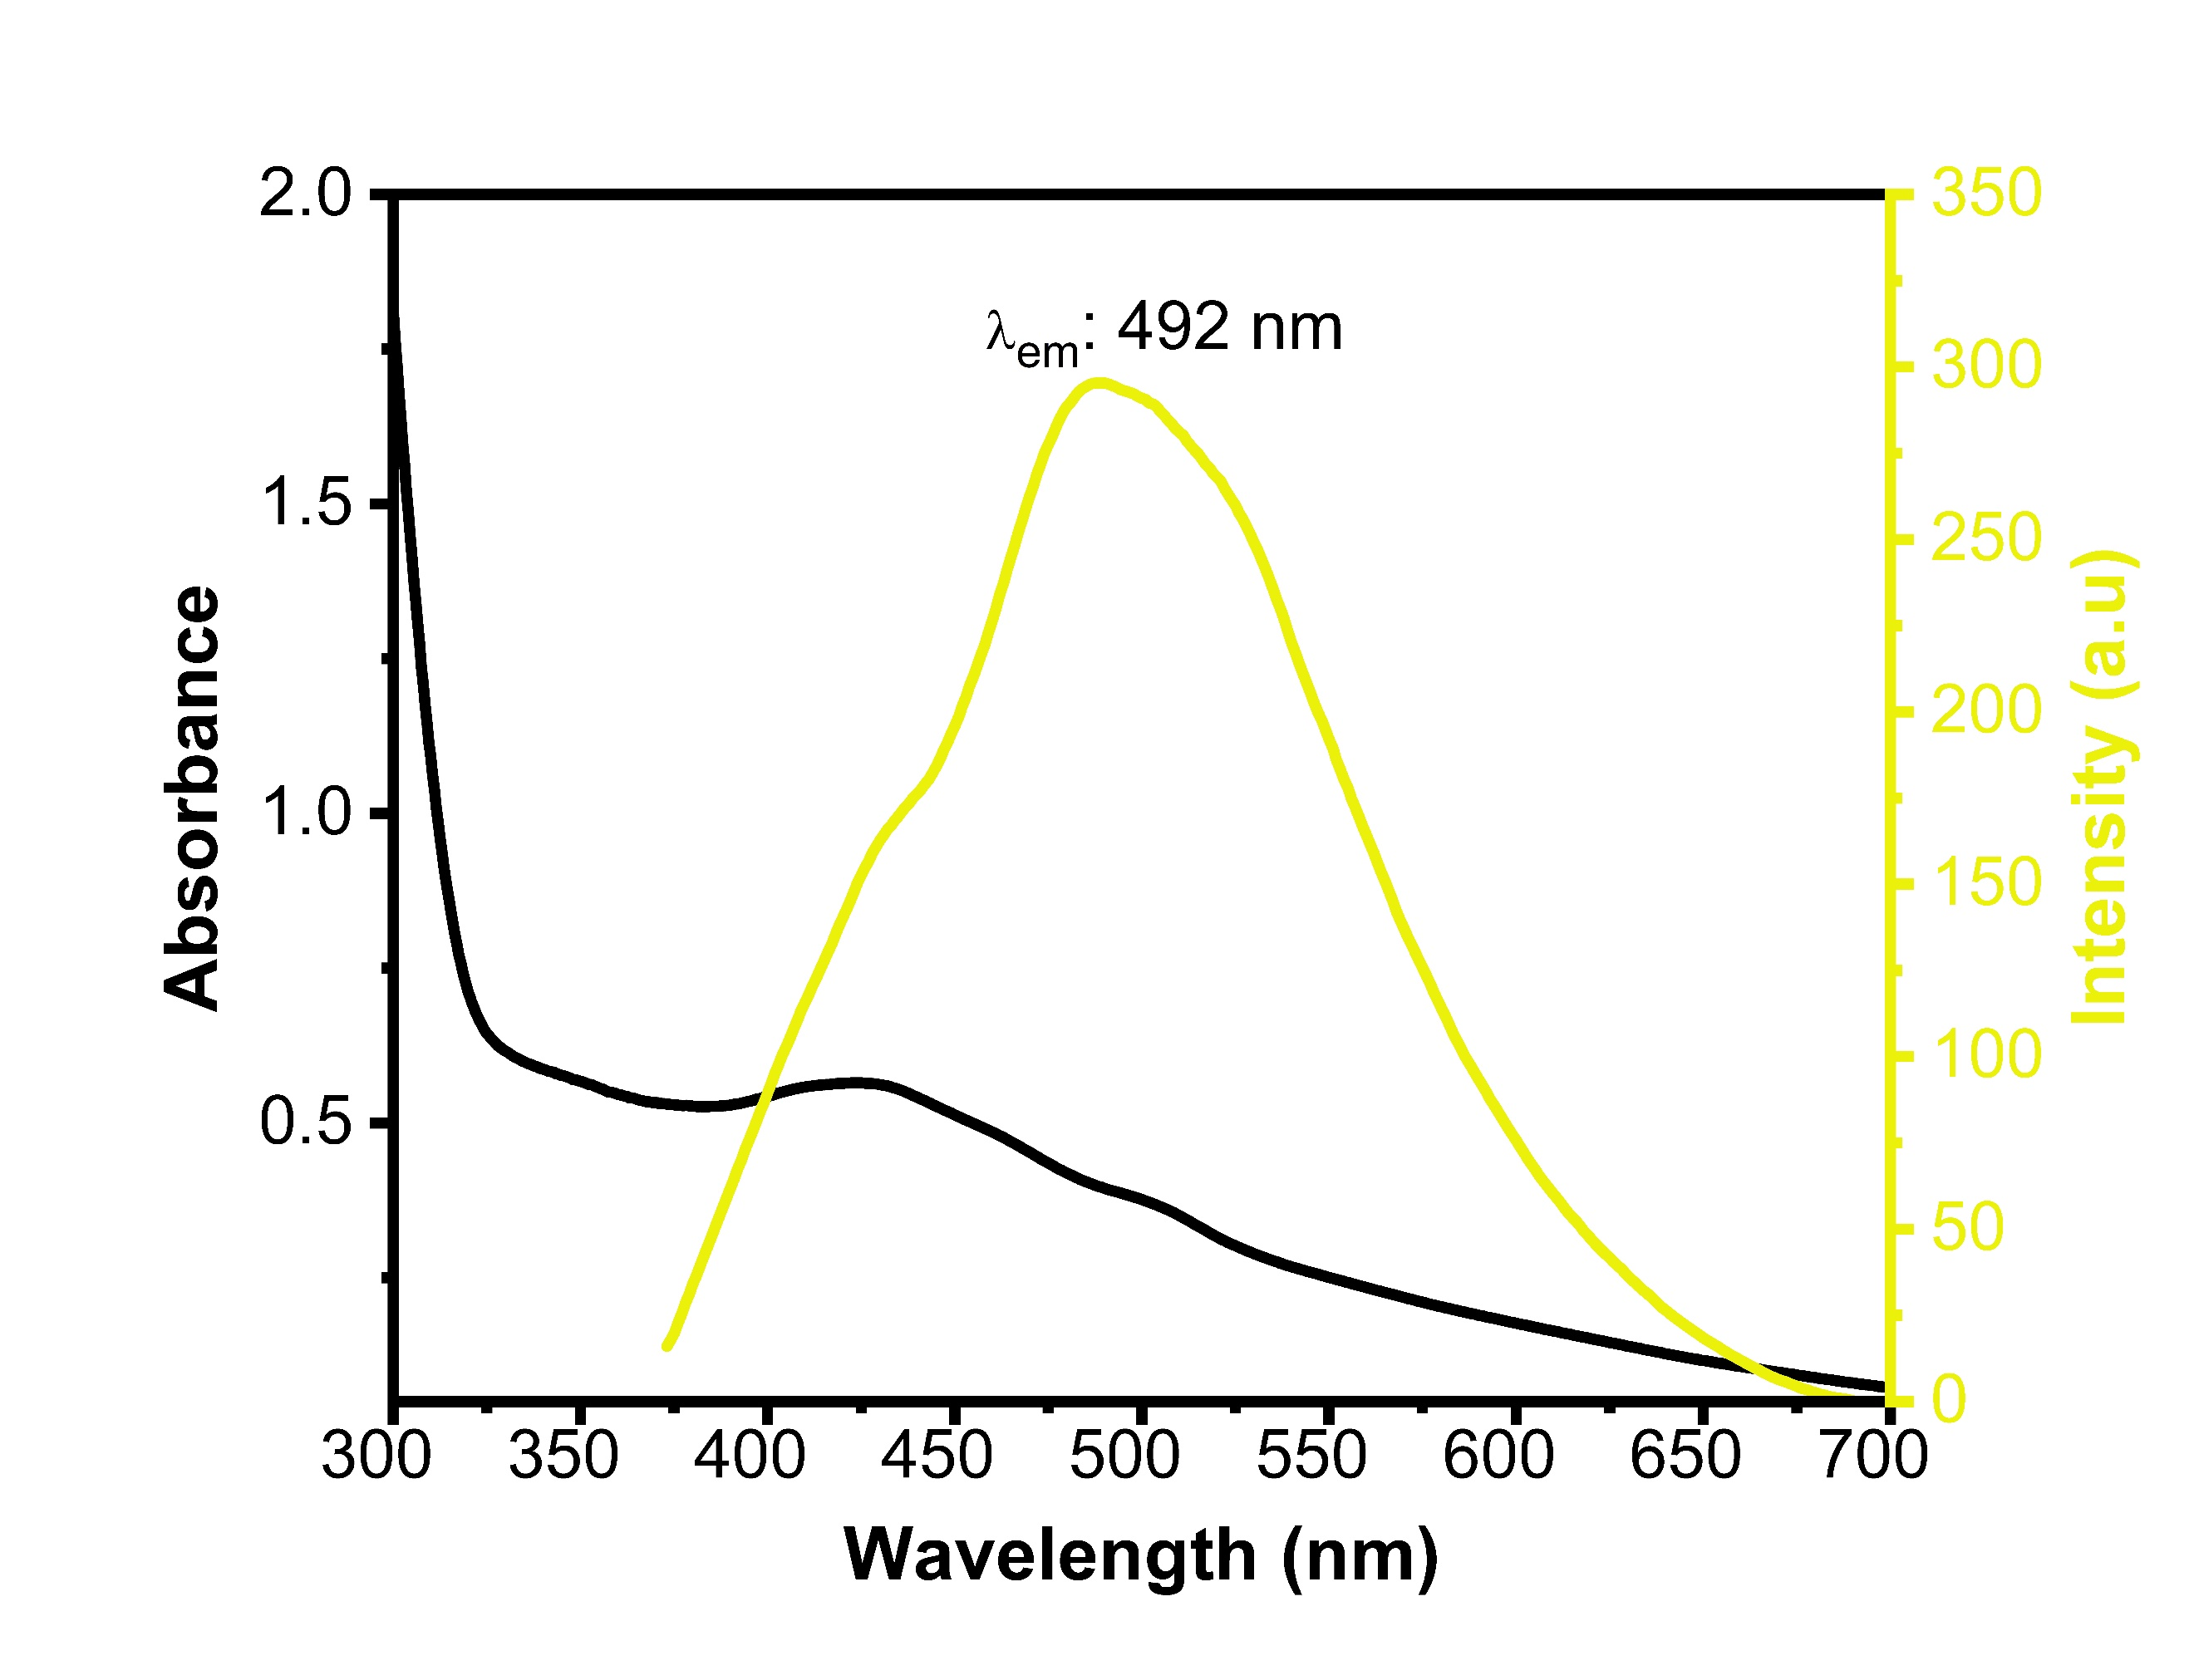 UV/Visand Fluorescence emissionspectras (λexc: 365 nm) of yellow carbon quantum dot (y-cqds).